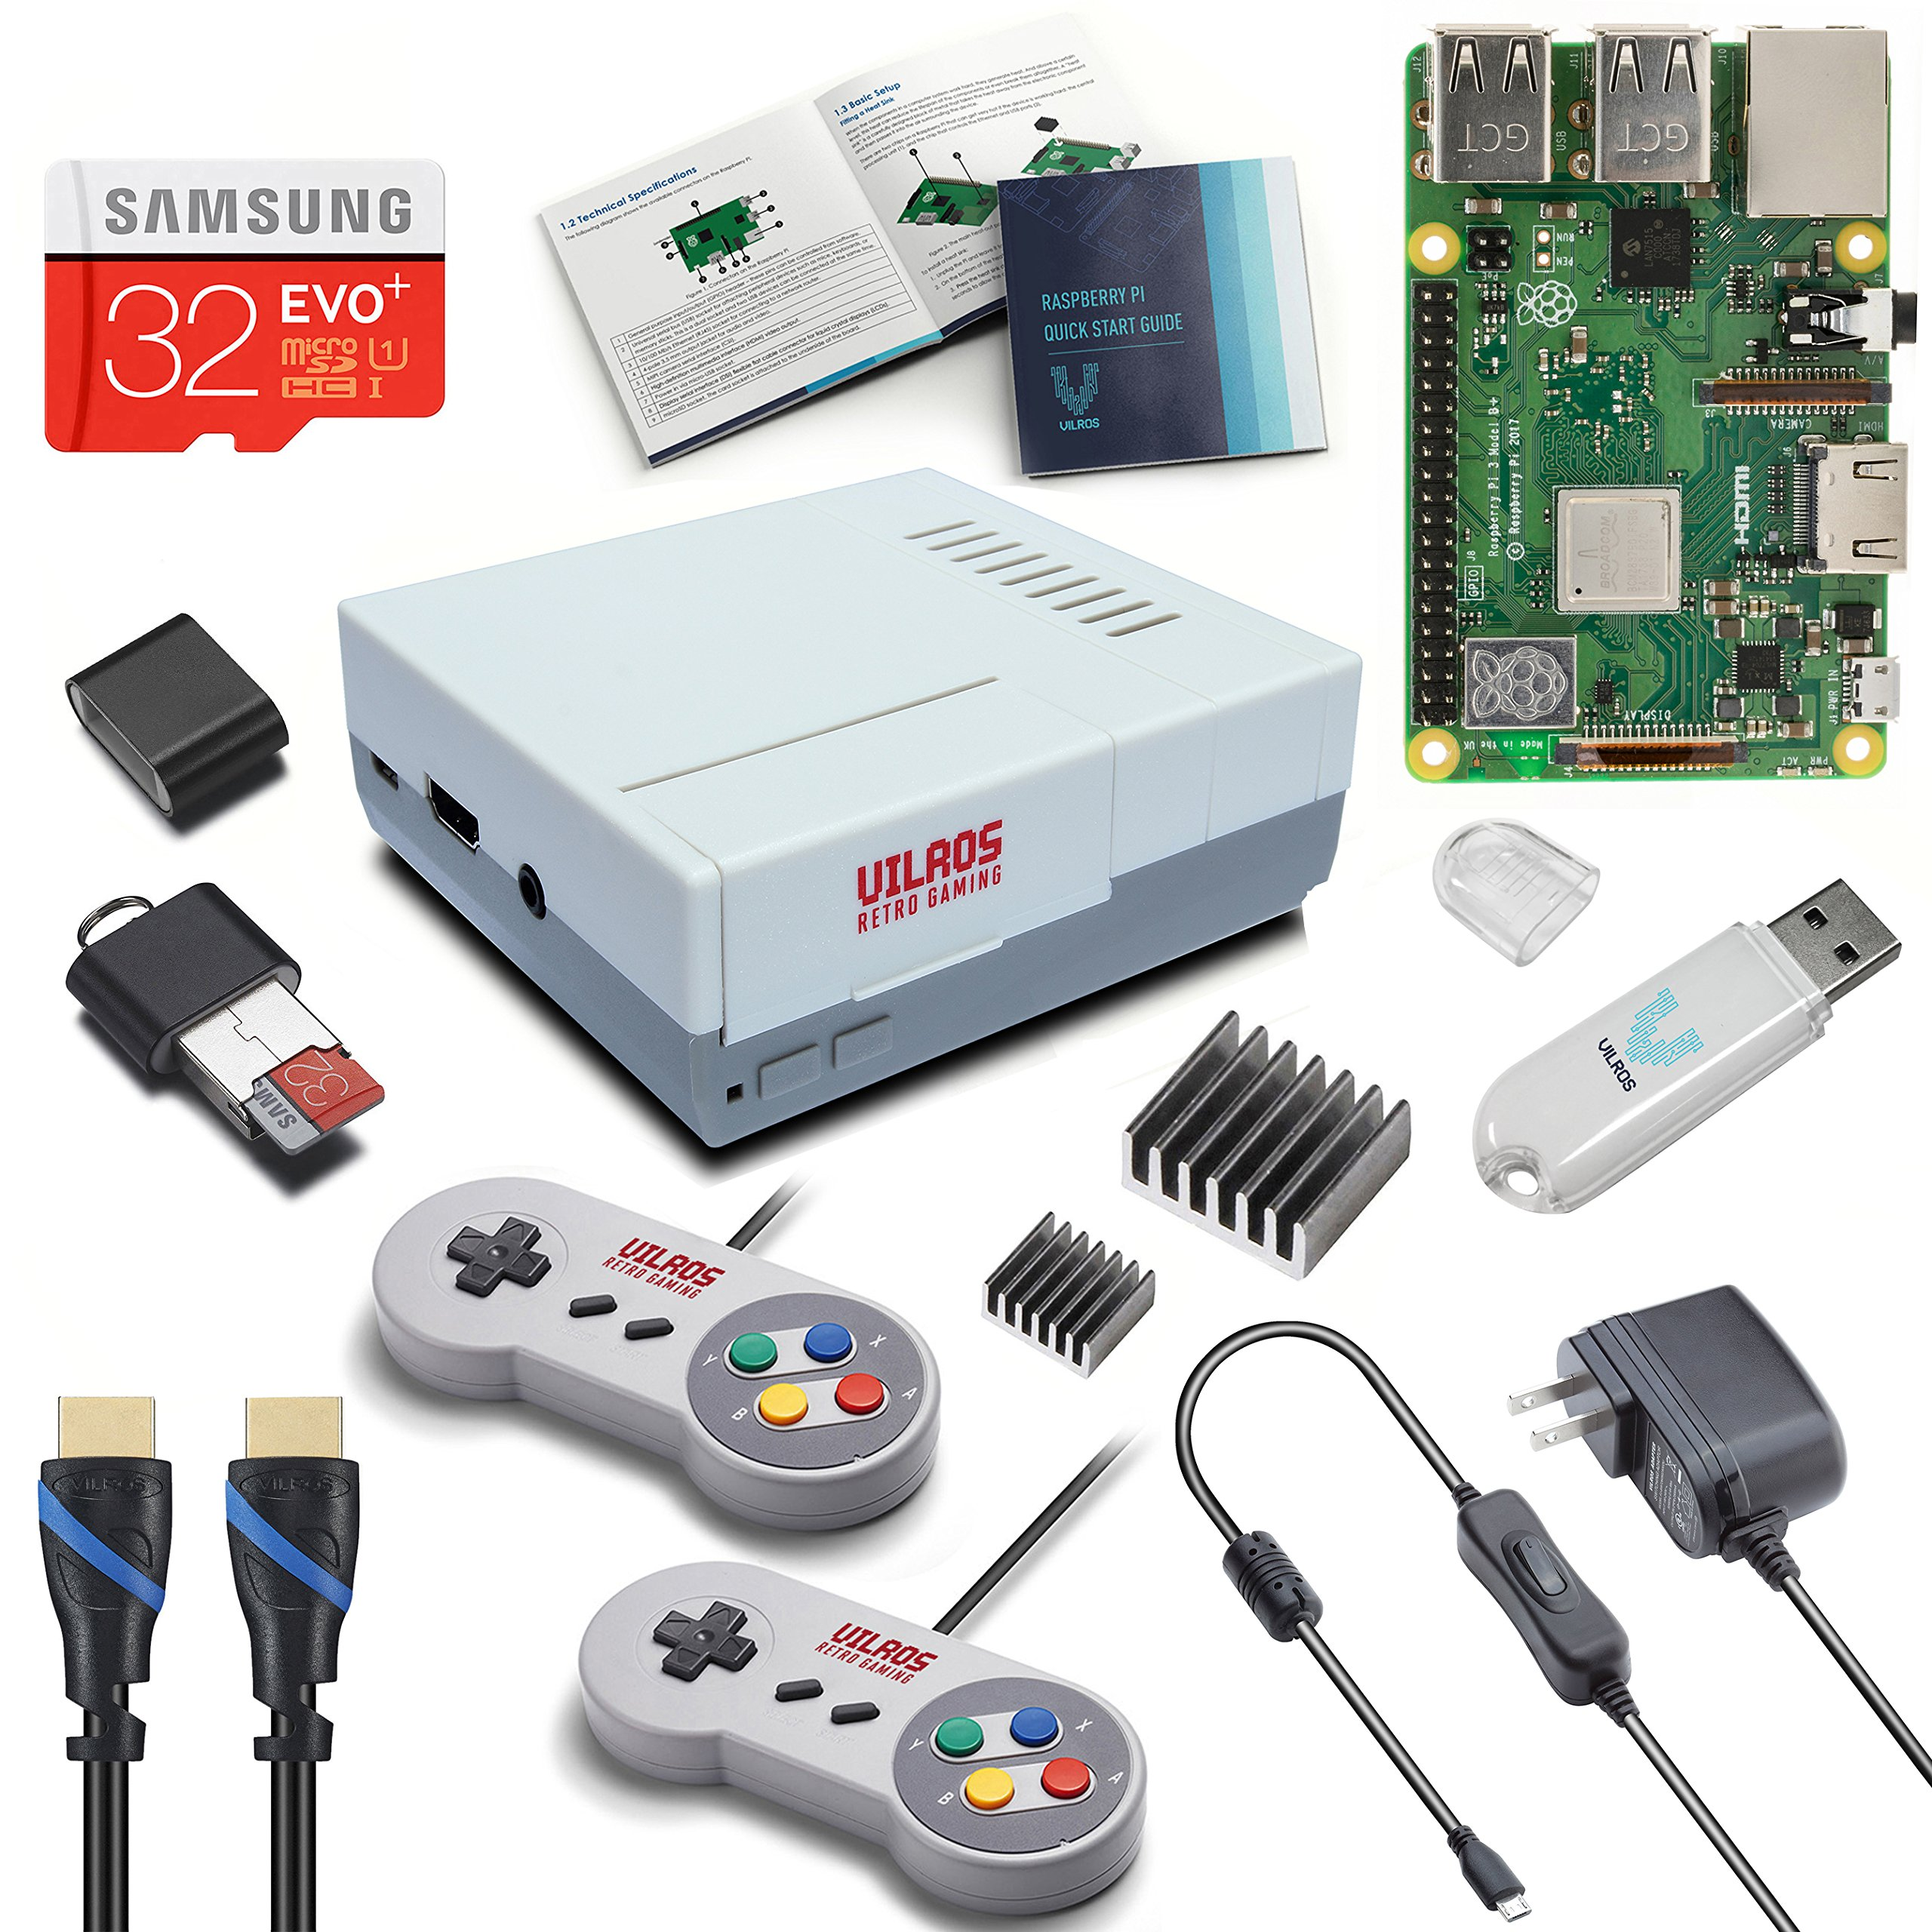 V-Kits Raspberry Pi 3 Model B+ (B Plus) Retro Arcade Gaming Kit with 2  Classic USB Gamepads [LATEST MODEL 2018]